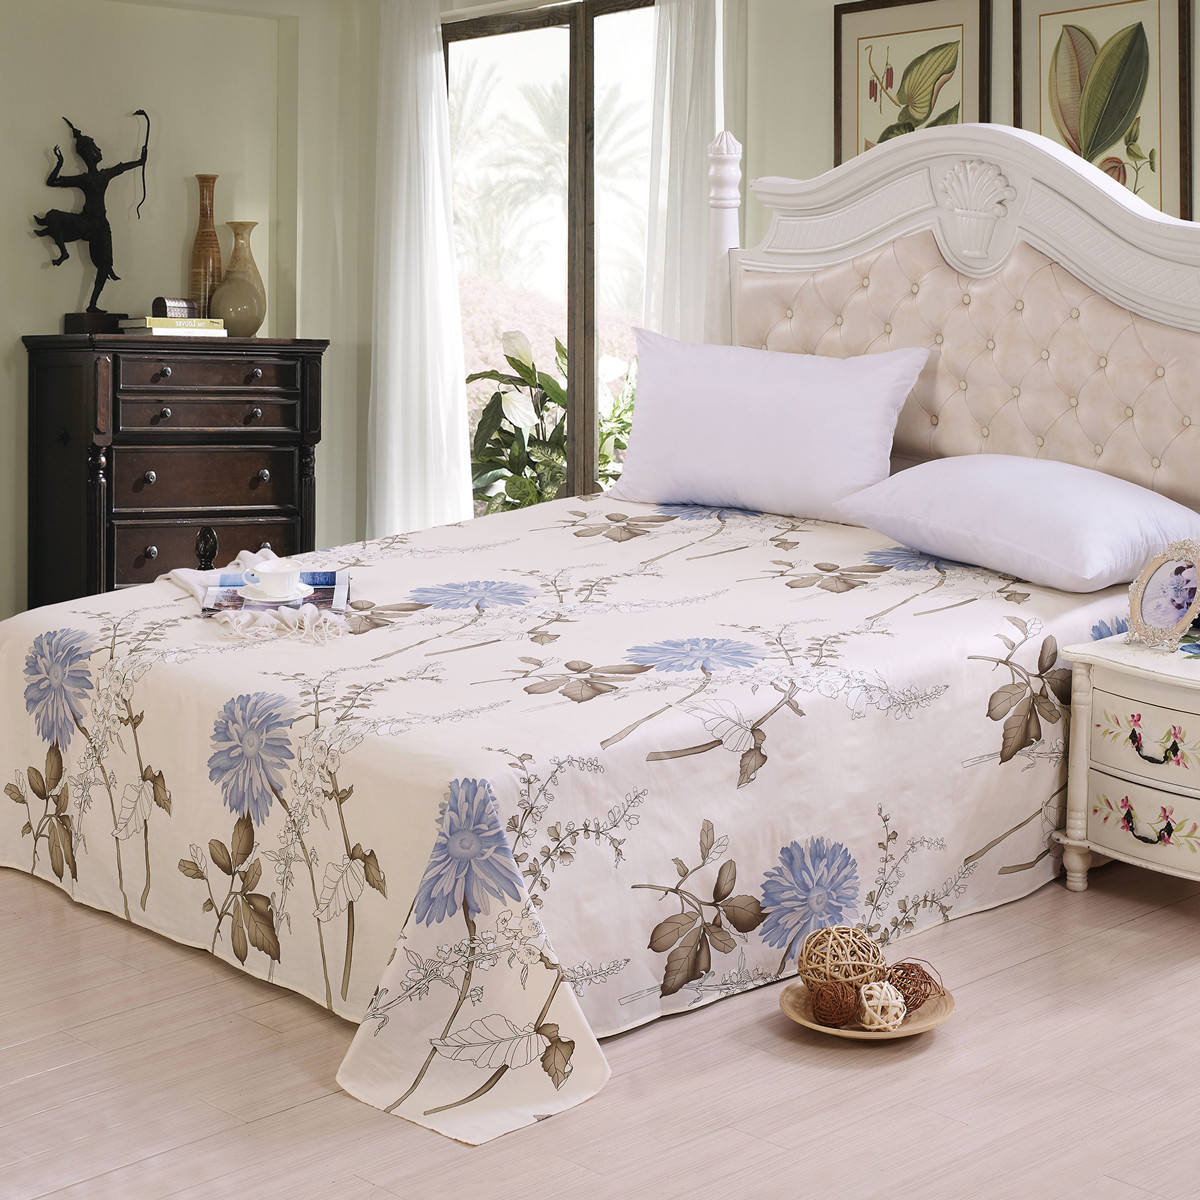 Polyester Bed Linen Flat Bed Sheet Set Pillowcase Pure cotton bed sheet cotton single double 1.2/1.5 / m dormitory Duvet Cover